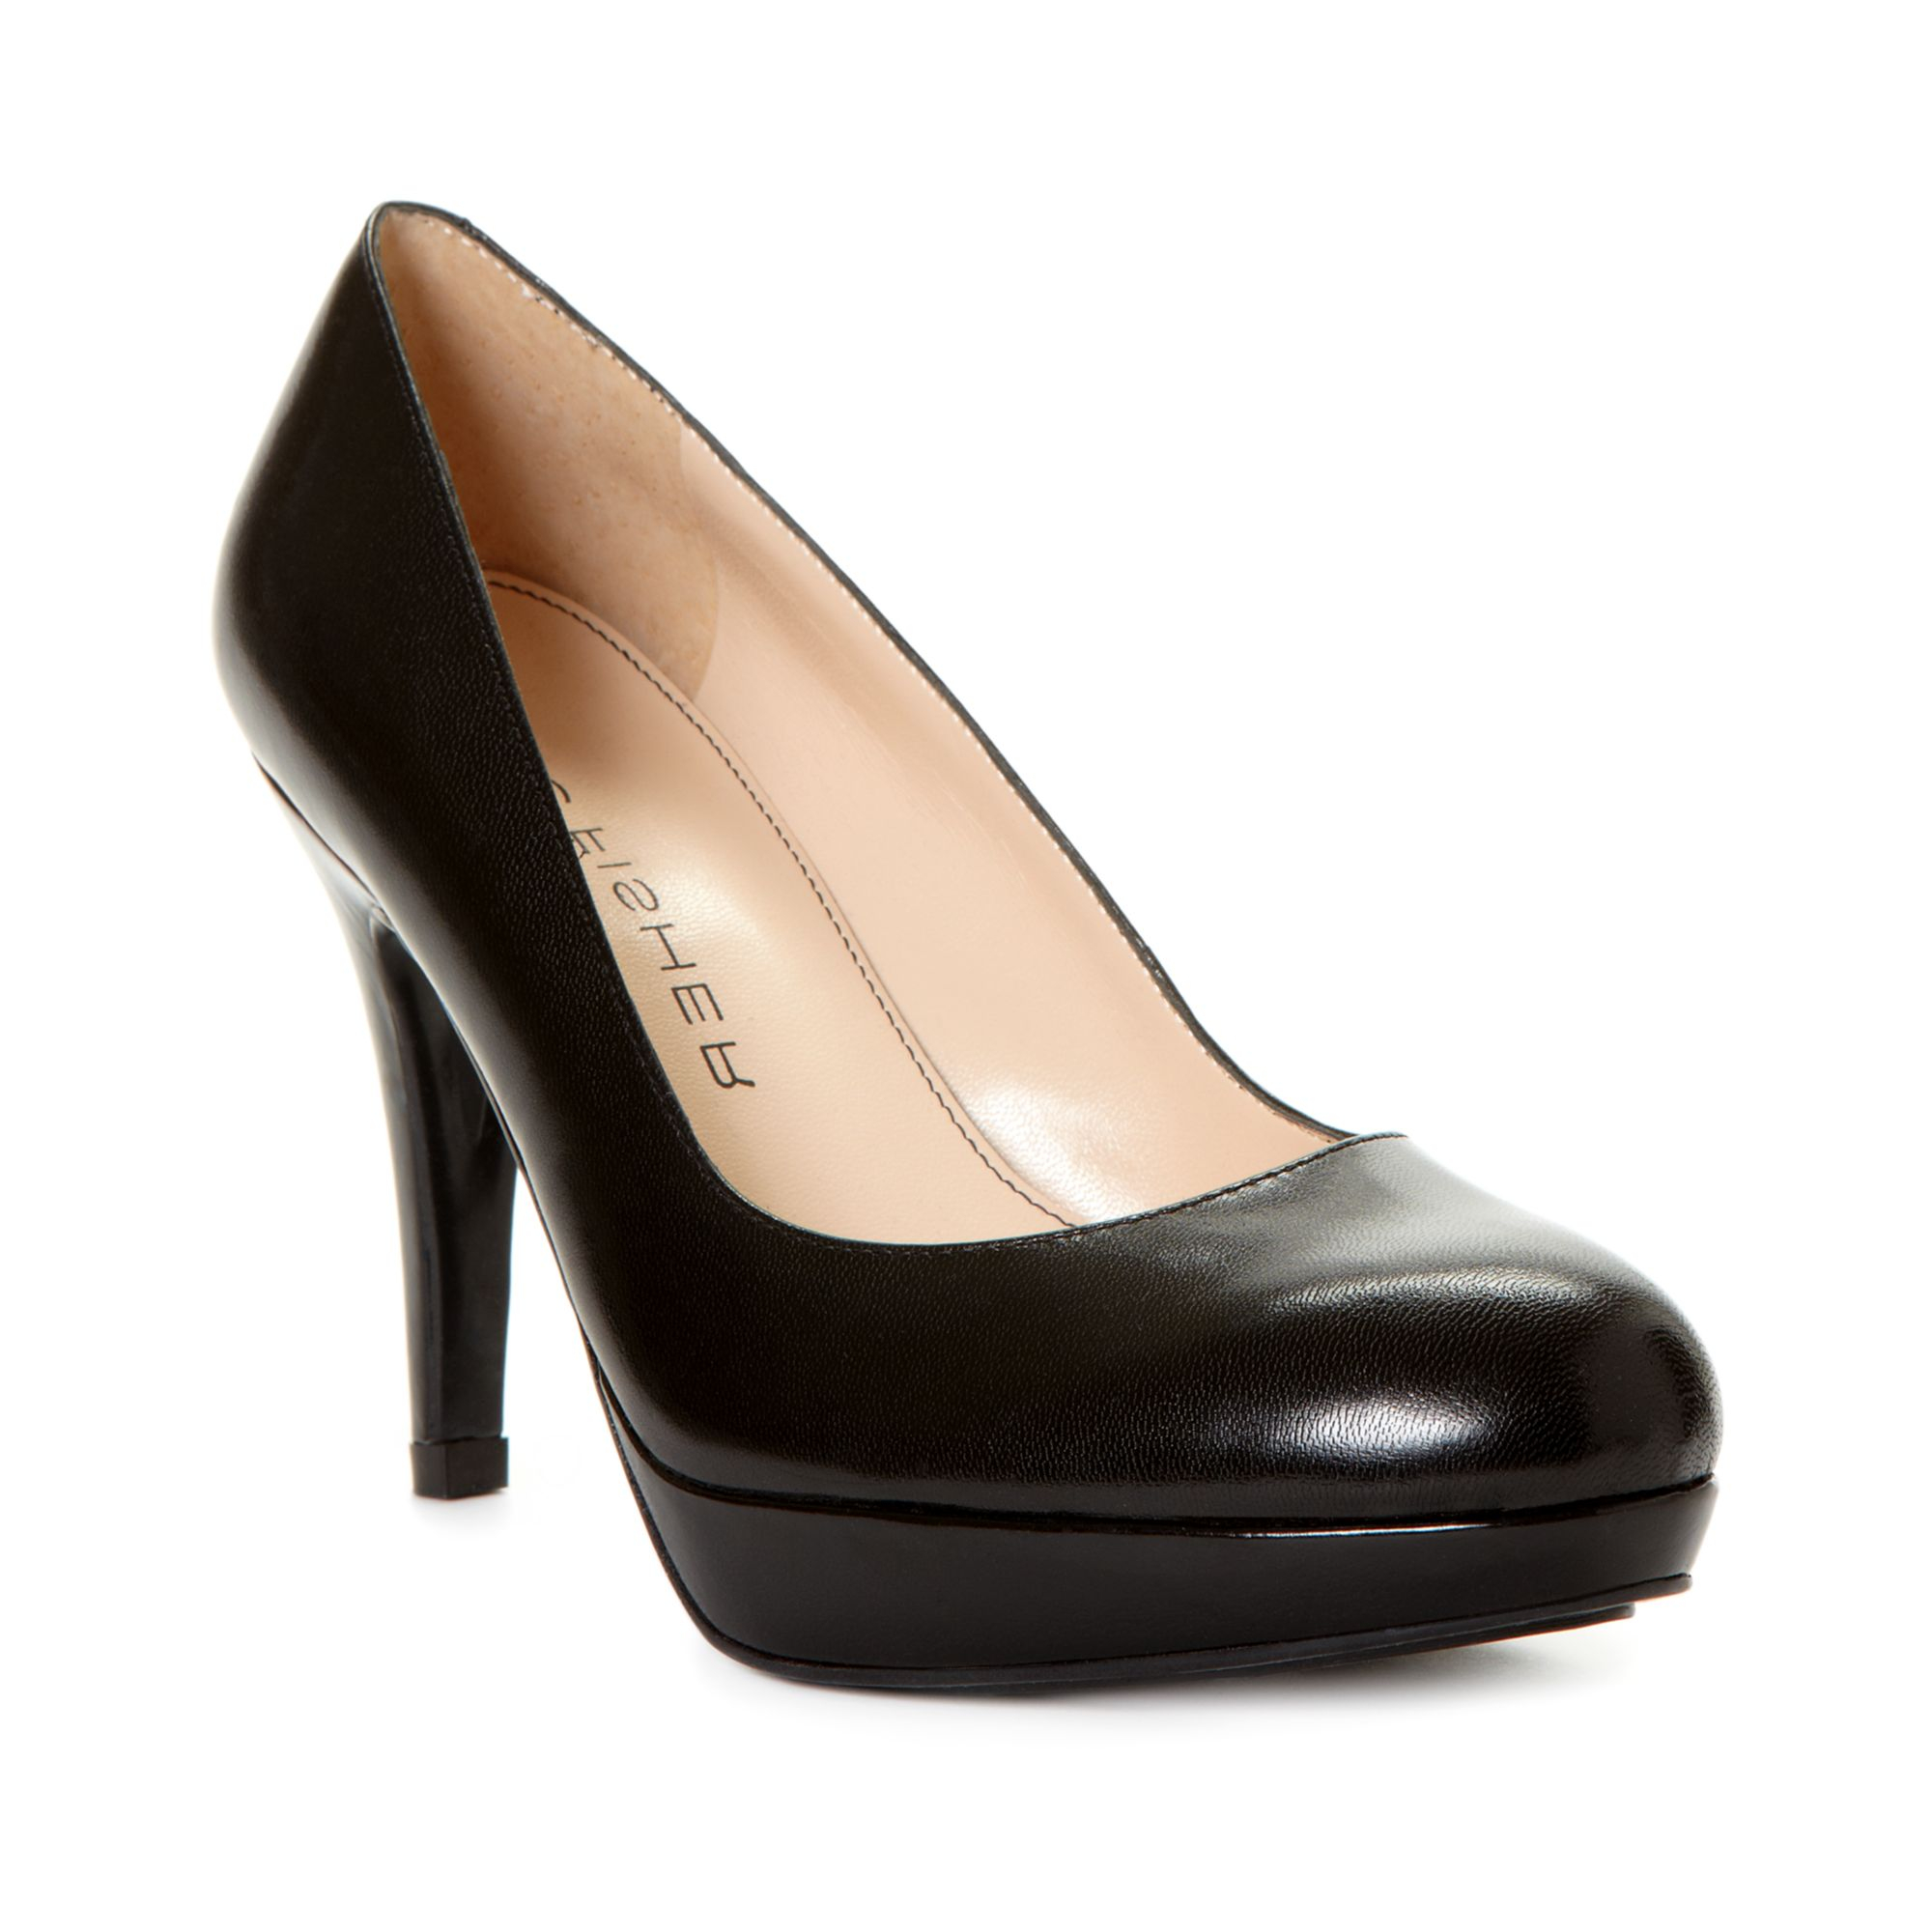 Macys Shoes Womens Heels